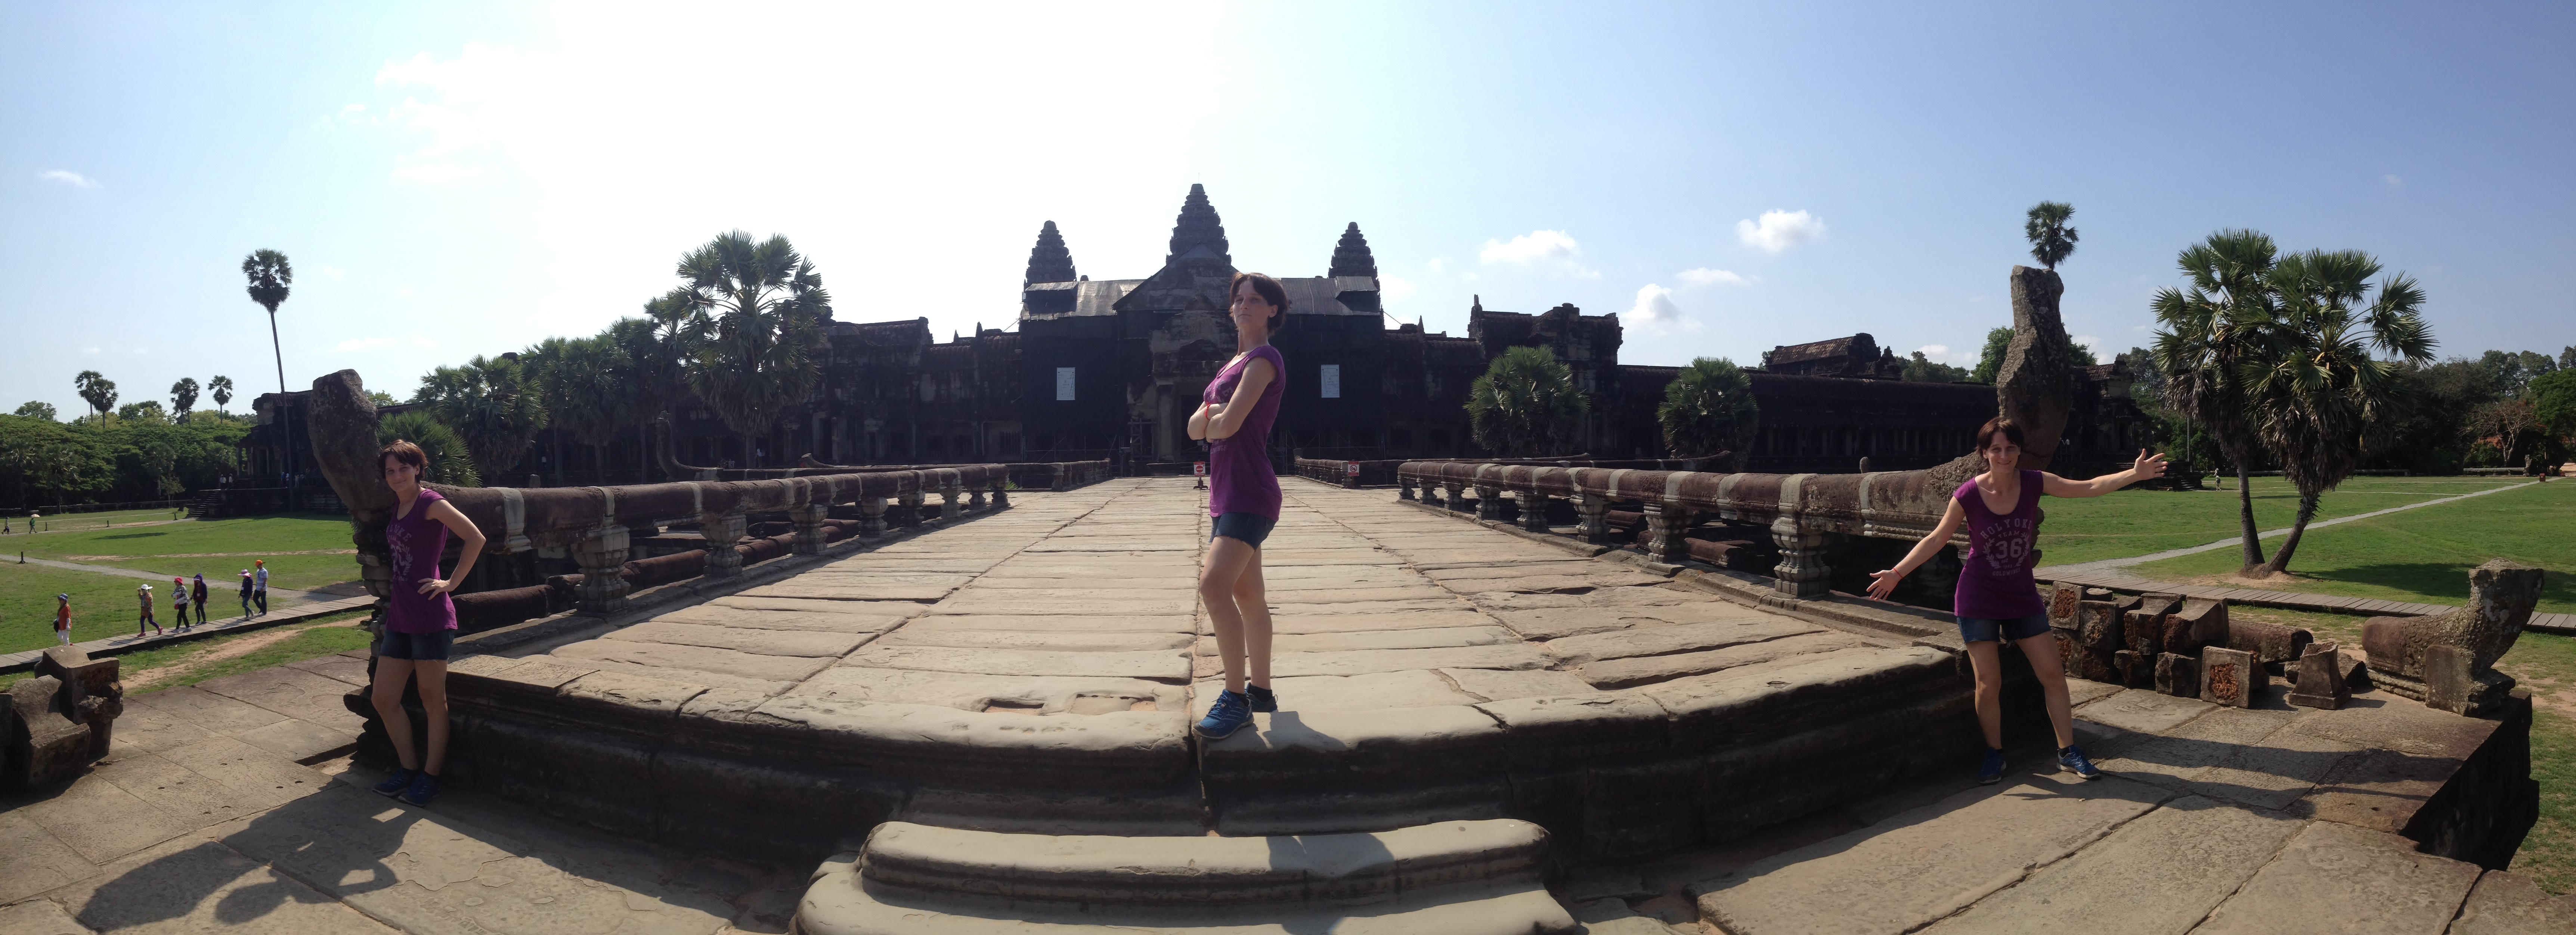 Taking a long week-end getaway to explore Siam Reap and visit Angkor Wat. #freedom